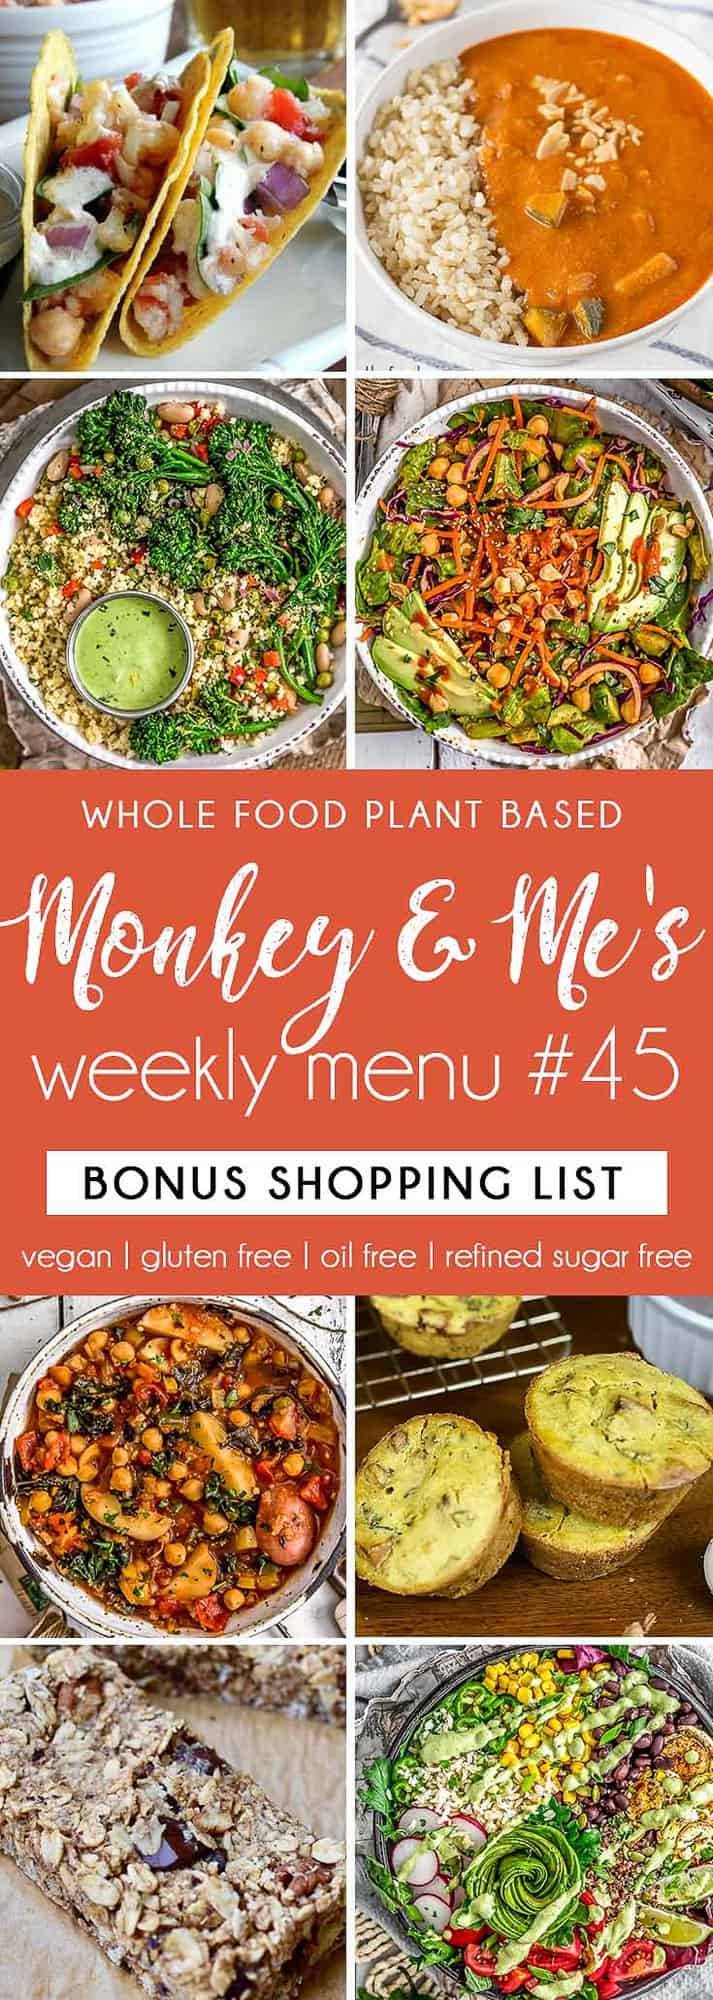 Monkey and Me's Menu 45 featuring 8 recipes